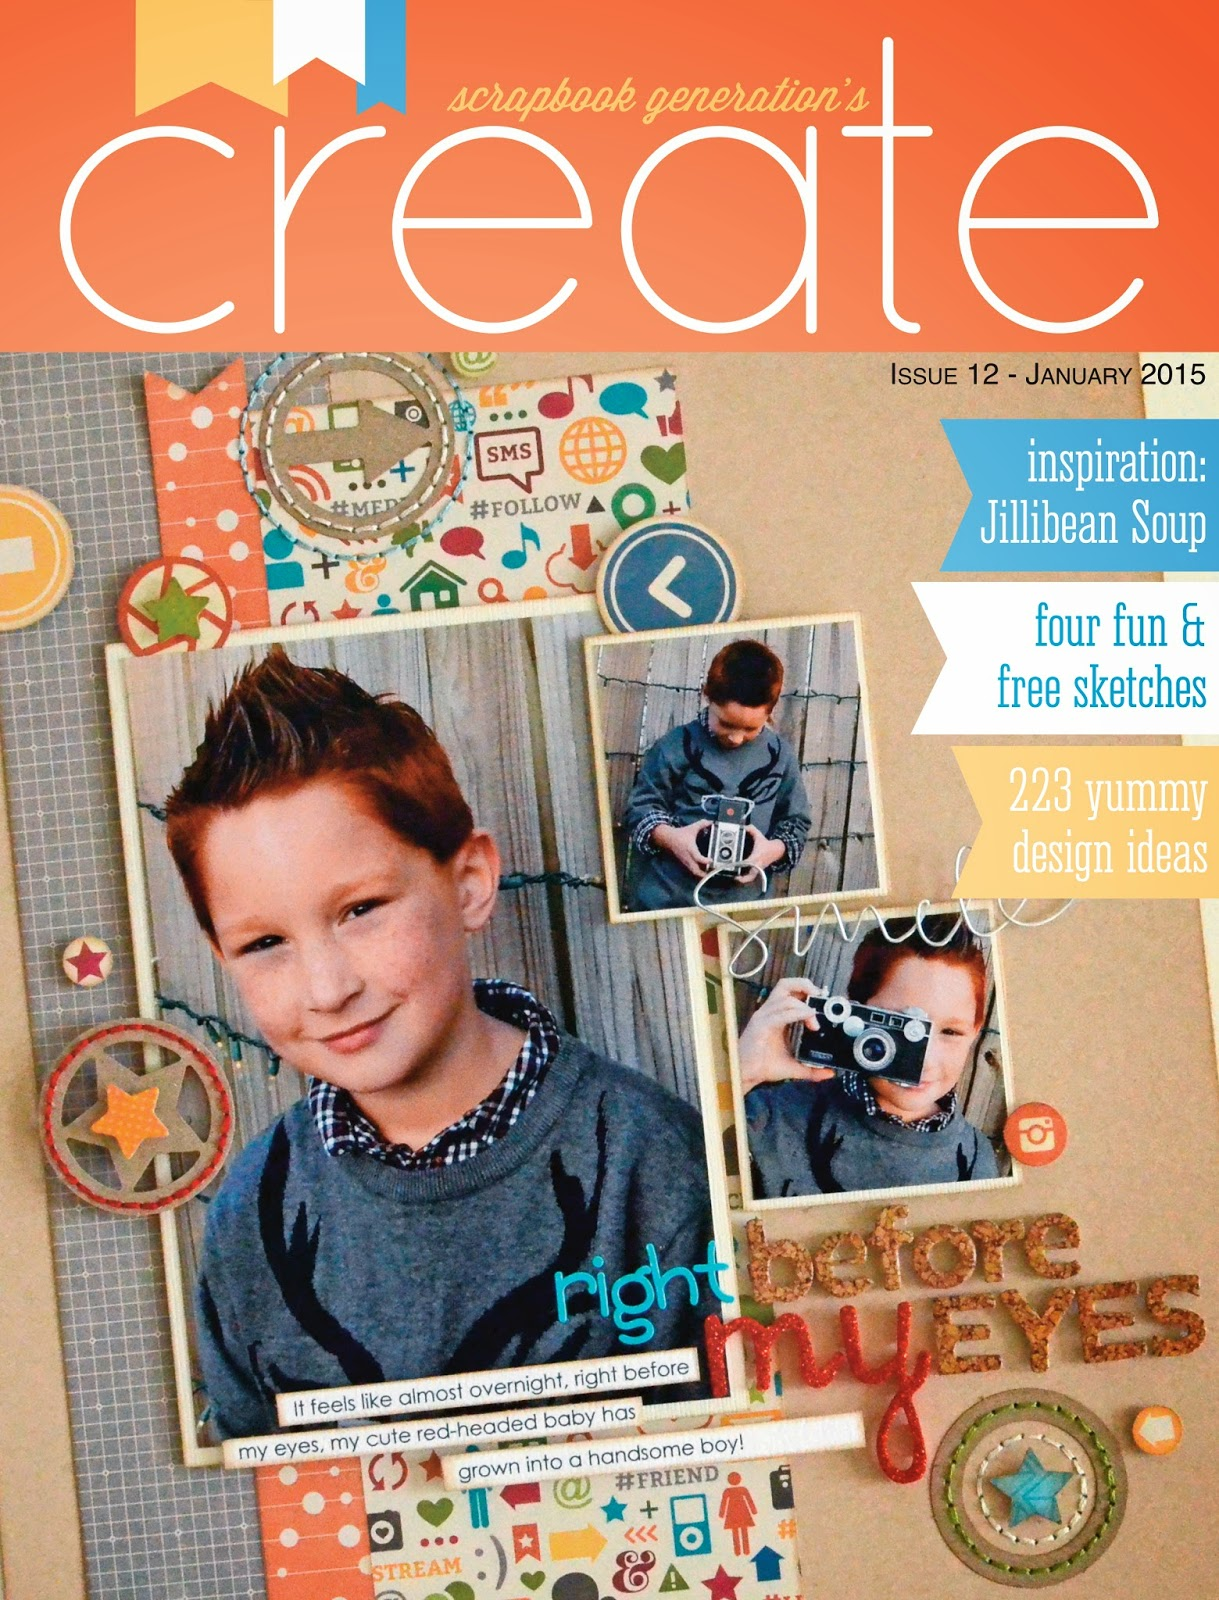 http://issuu.com/sgcreate/docs/create_-_issue_12_-_january_2015